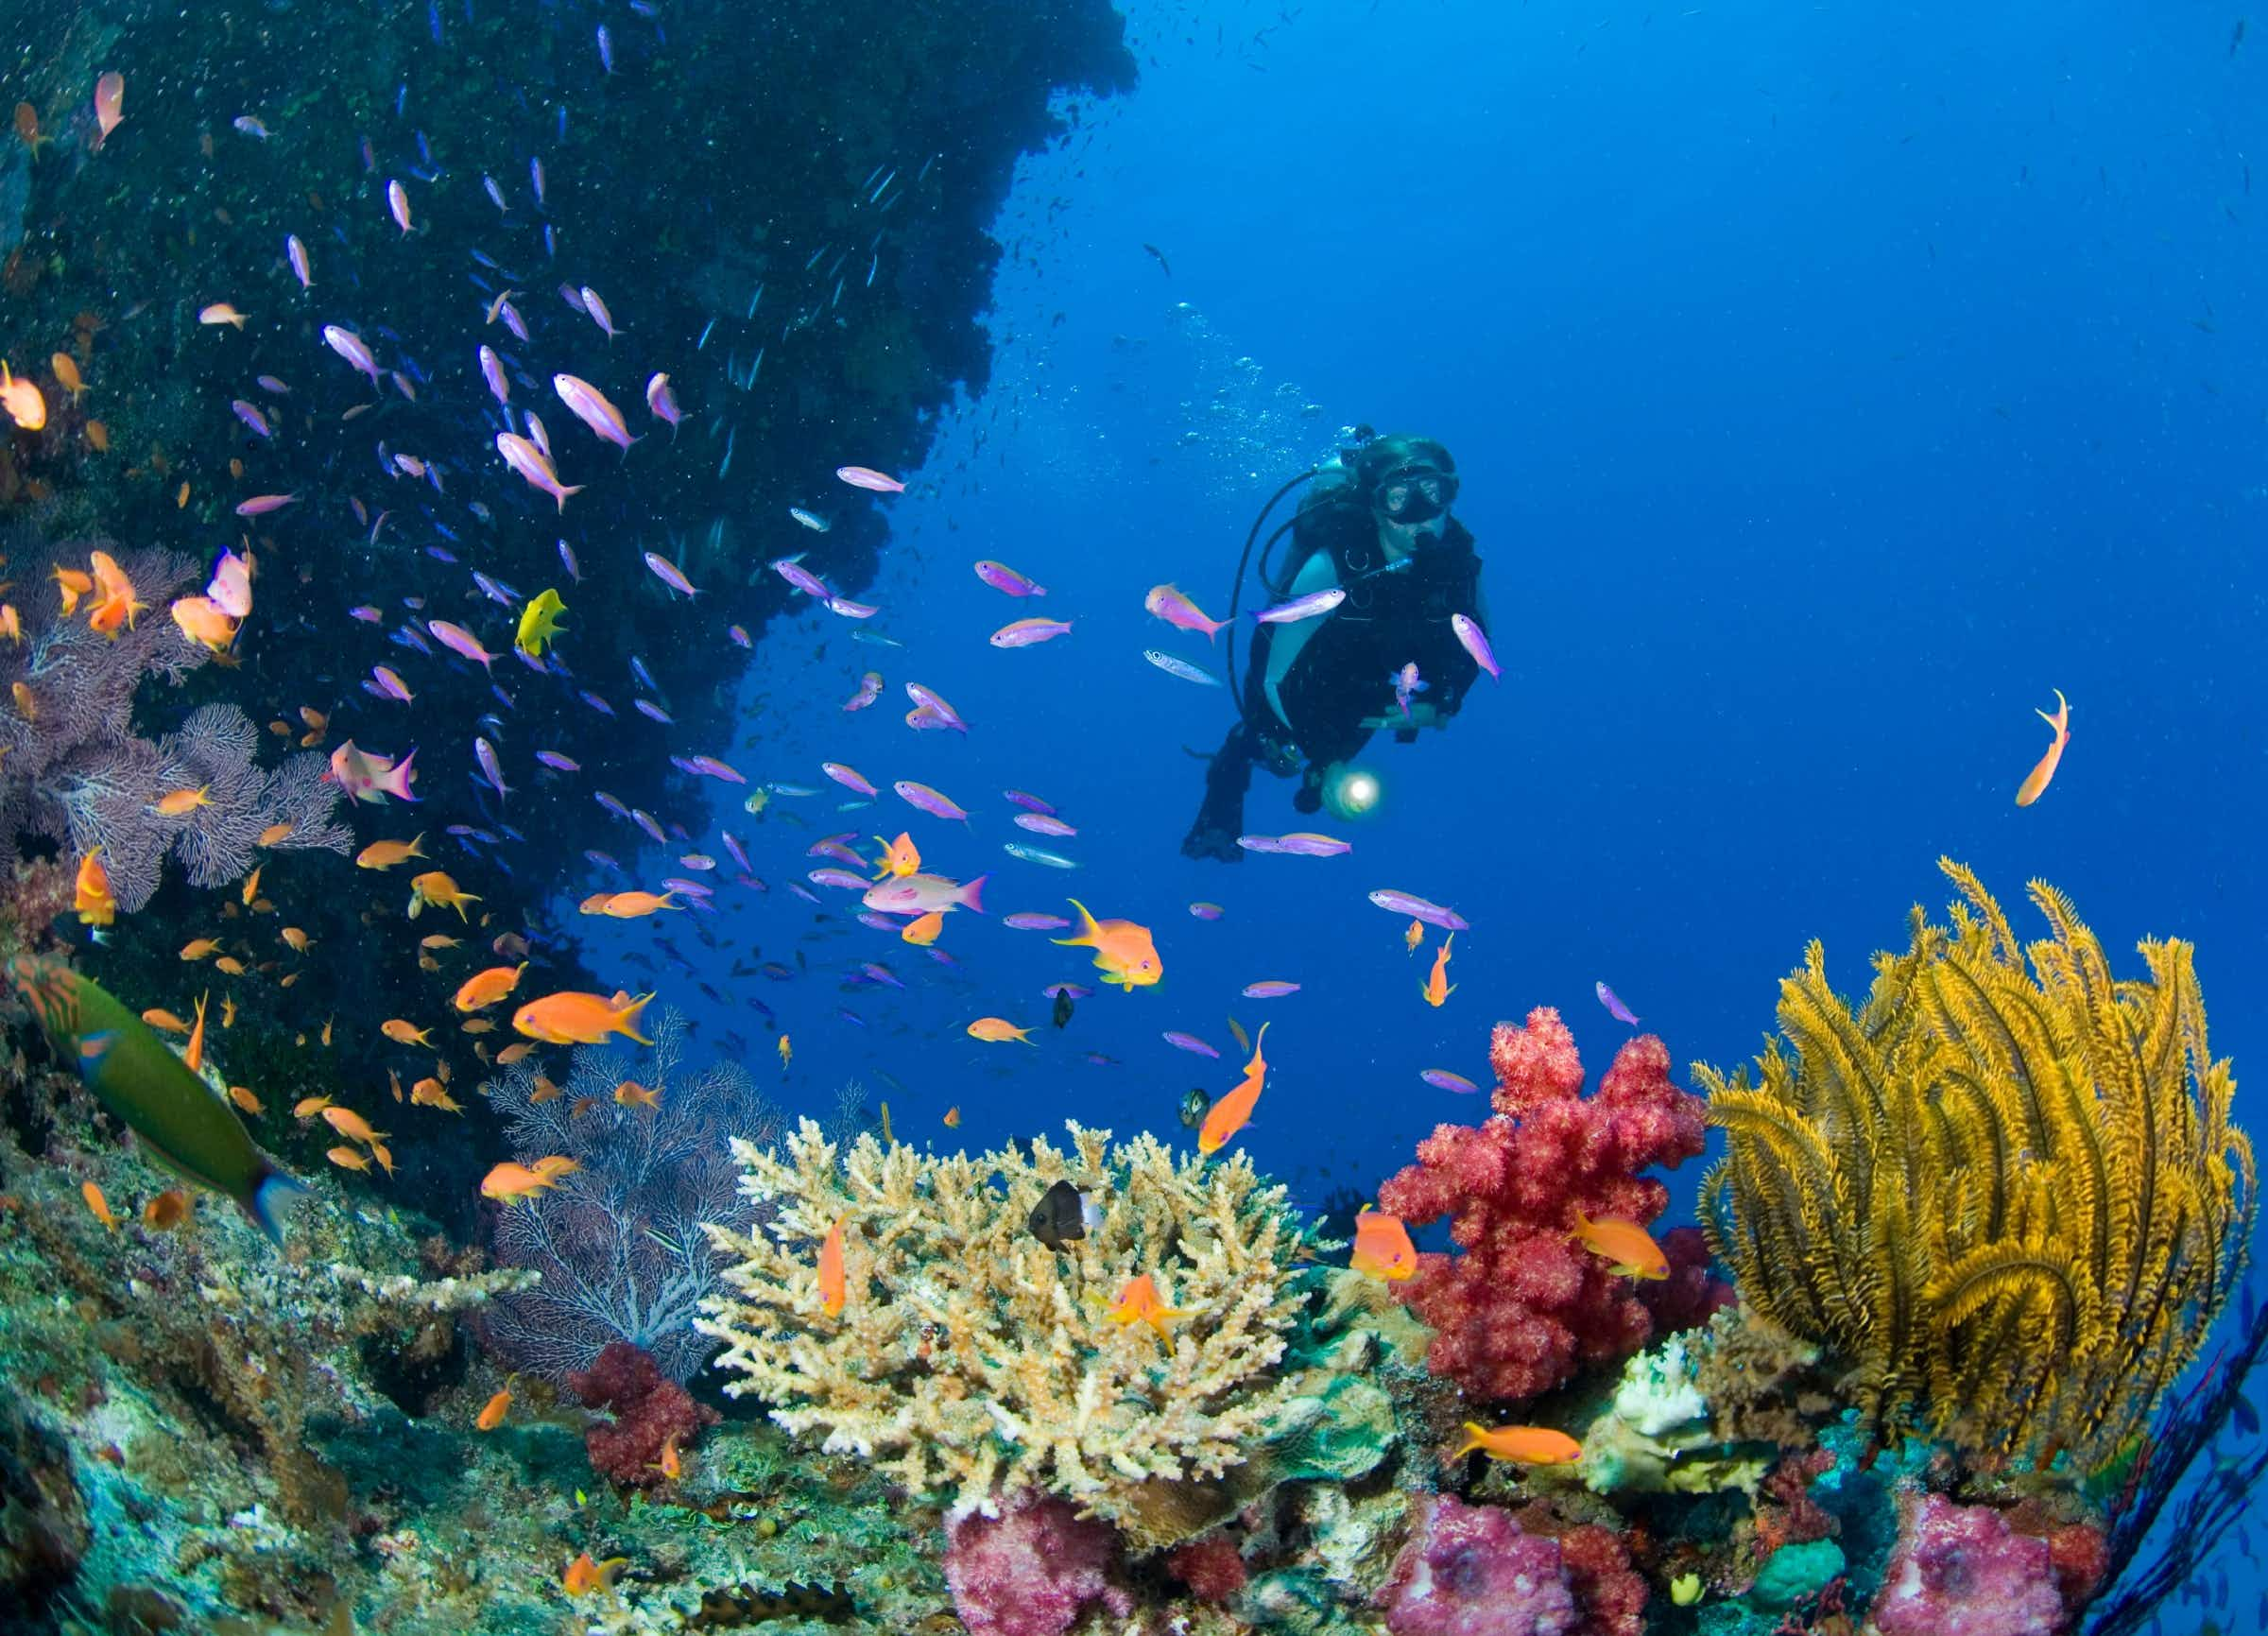 Is coral gardening going to save South Pacific reefs from bleaching?